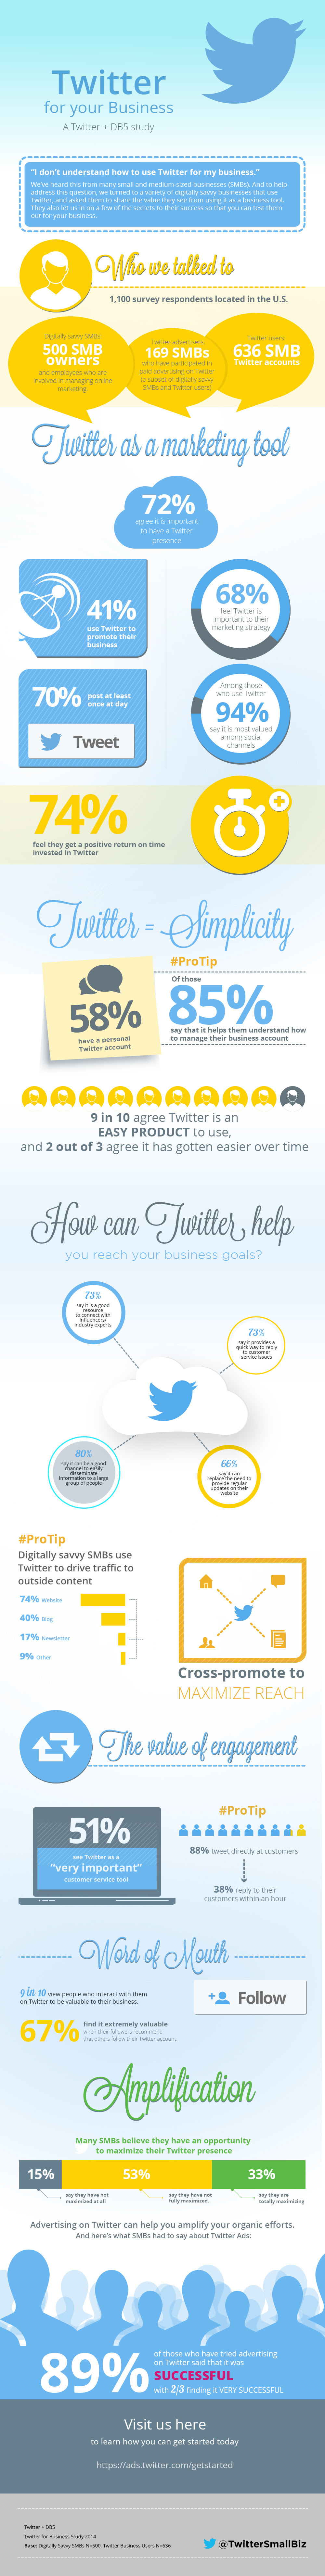 How To Use #Twitter For Your Business - #infographic #socialmedia